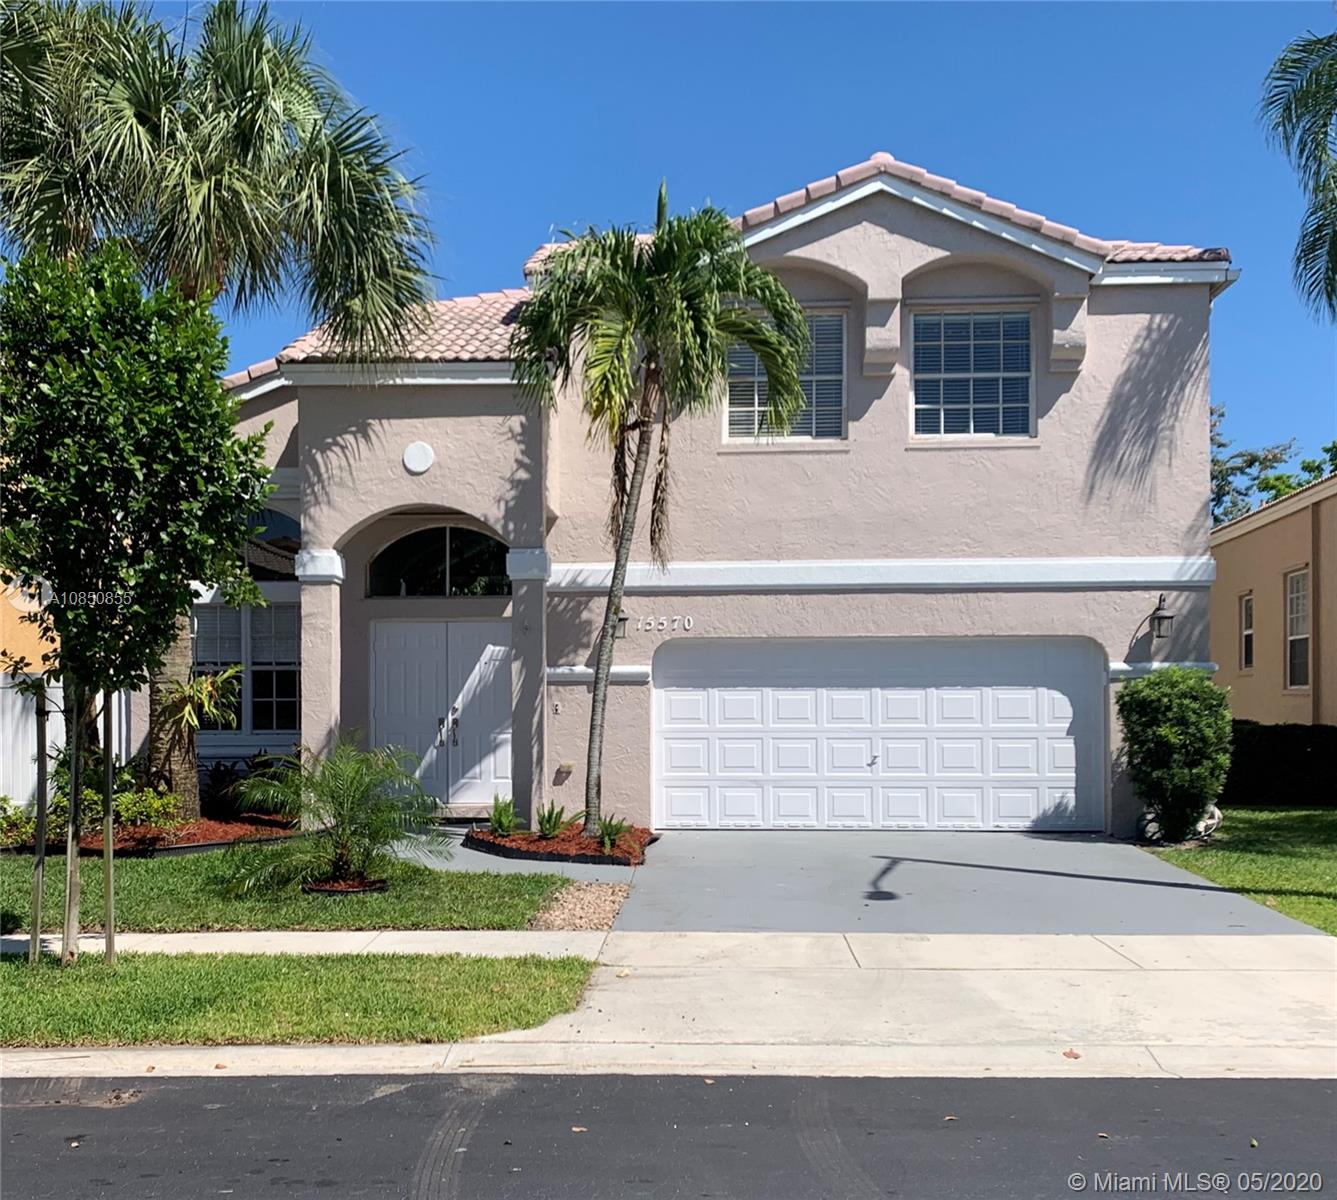 15570 NW 12th Ct, Pembroke Pines, Florida 33028, 4 Bedrooms Bedrooms, ,3 BathroomsBathrooms,Residential,For Sale,15570 NW 12th Ct,A10850855